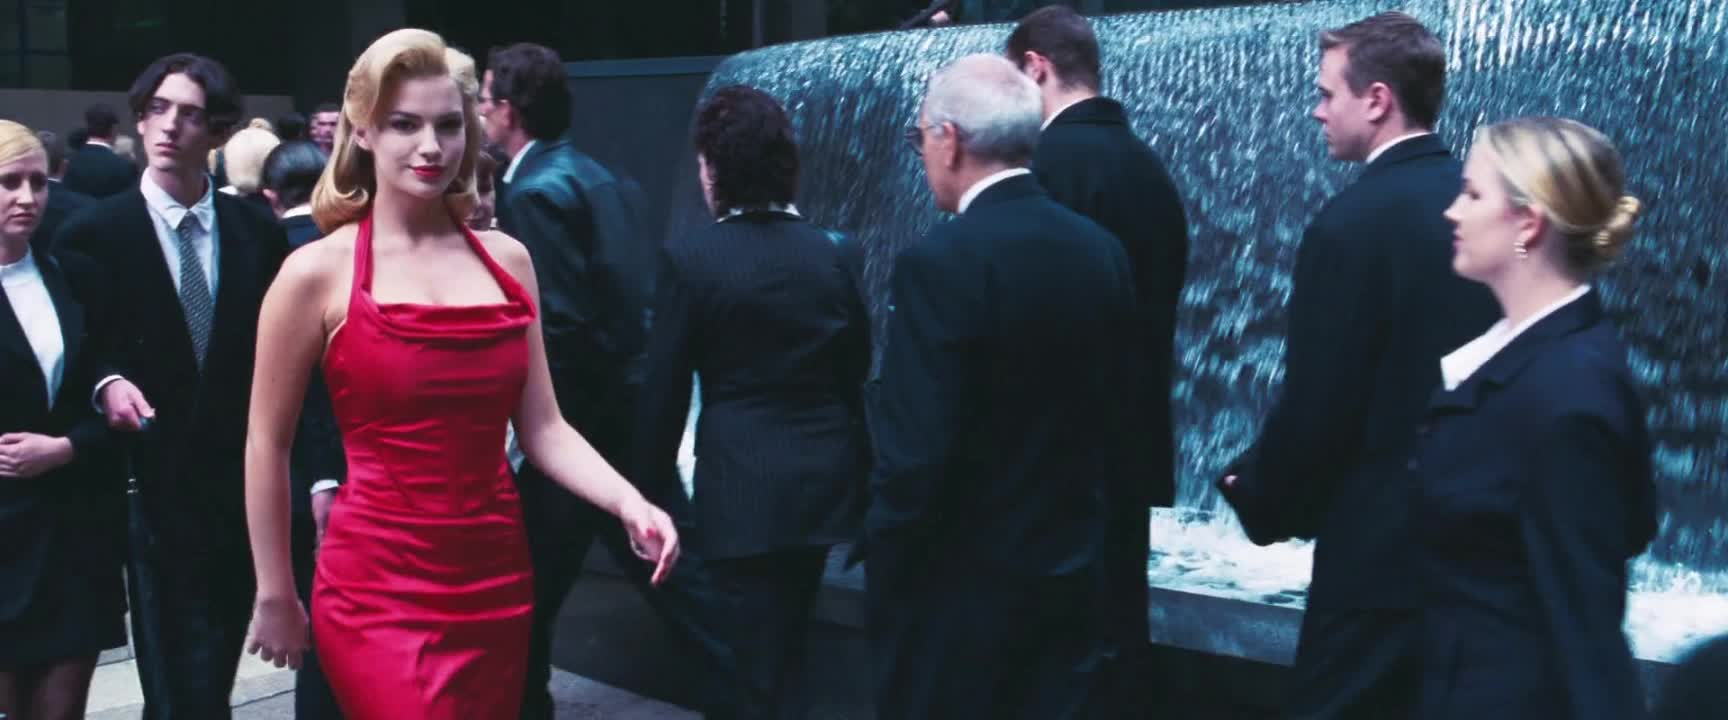 The Matrix - Staring at The woman in the red dress GIFs